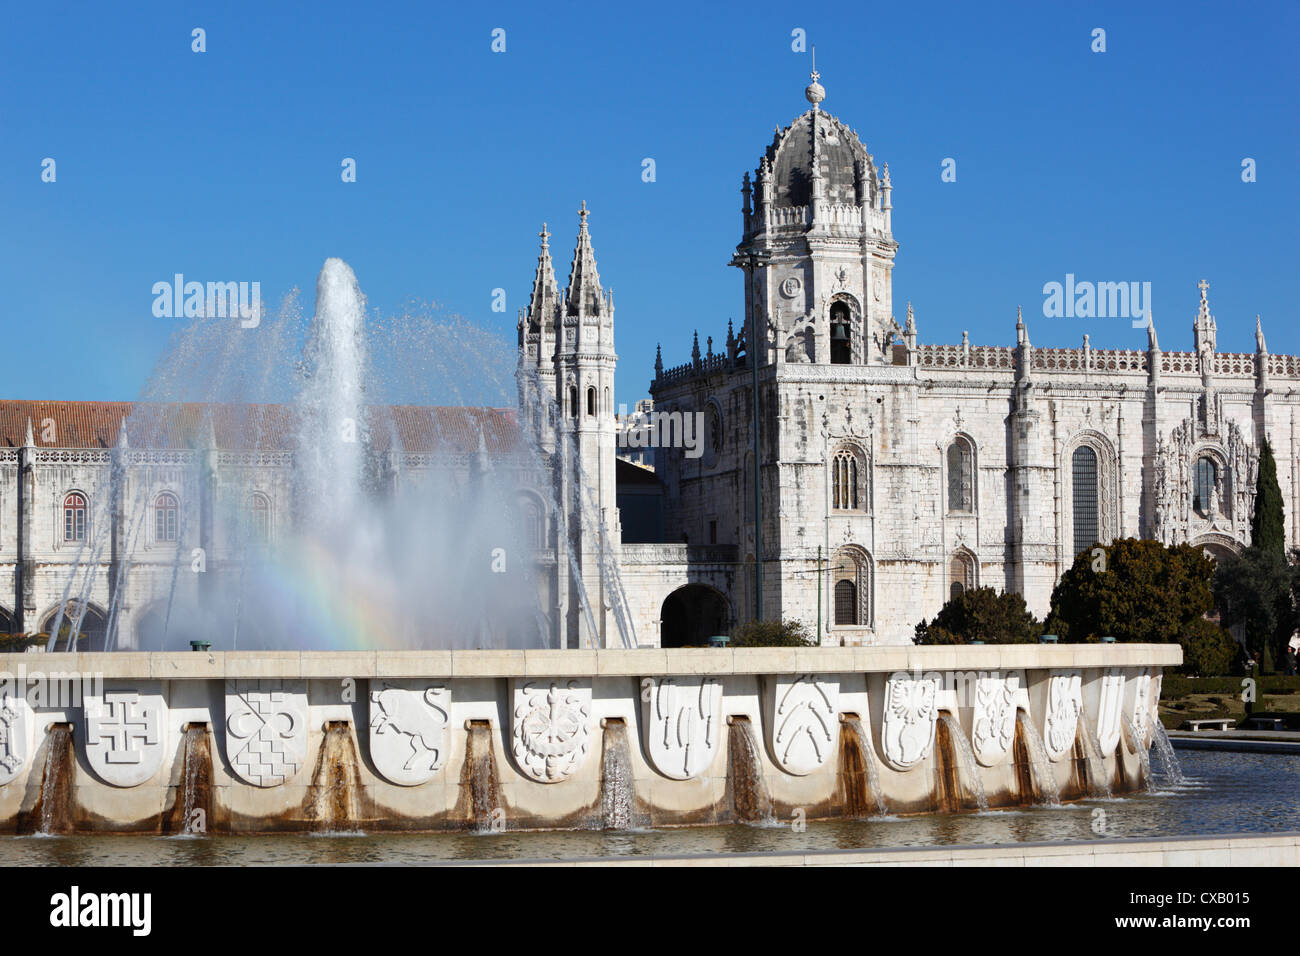 Mosteiro dos Jeronimos, UNESCO World Heritage Site, Belem, Lisbon, Portugal, Europe - Stock Image